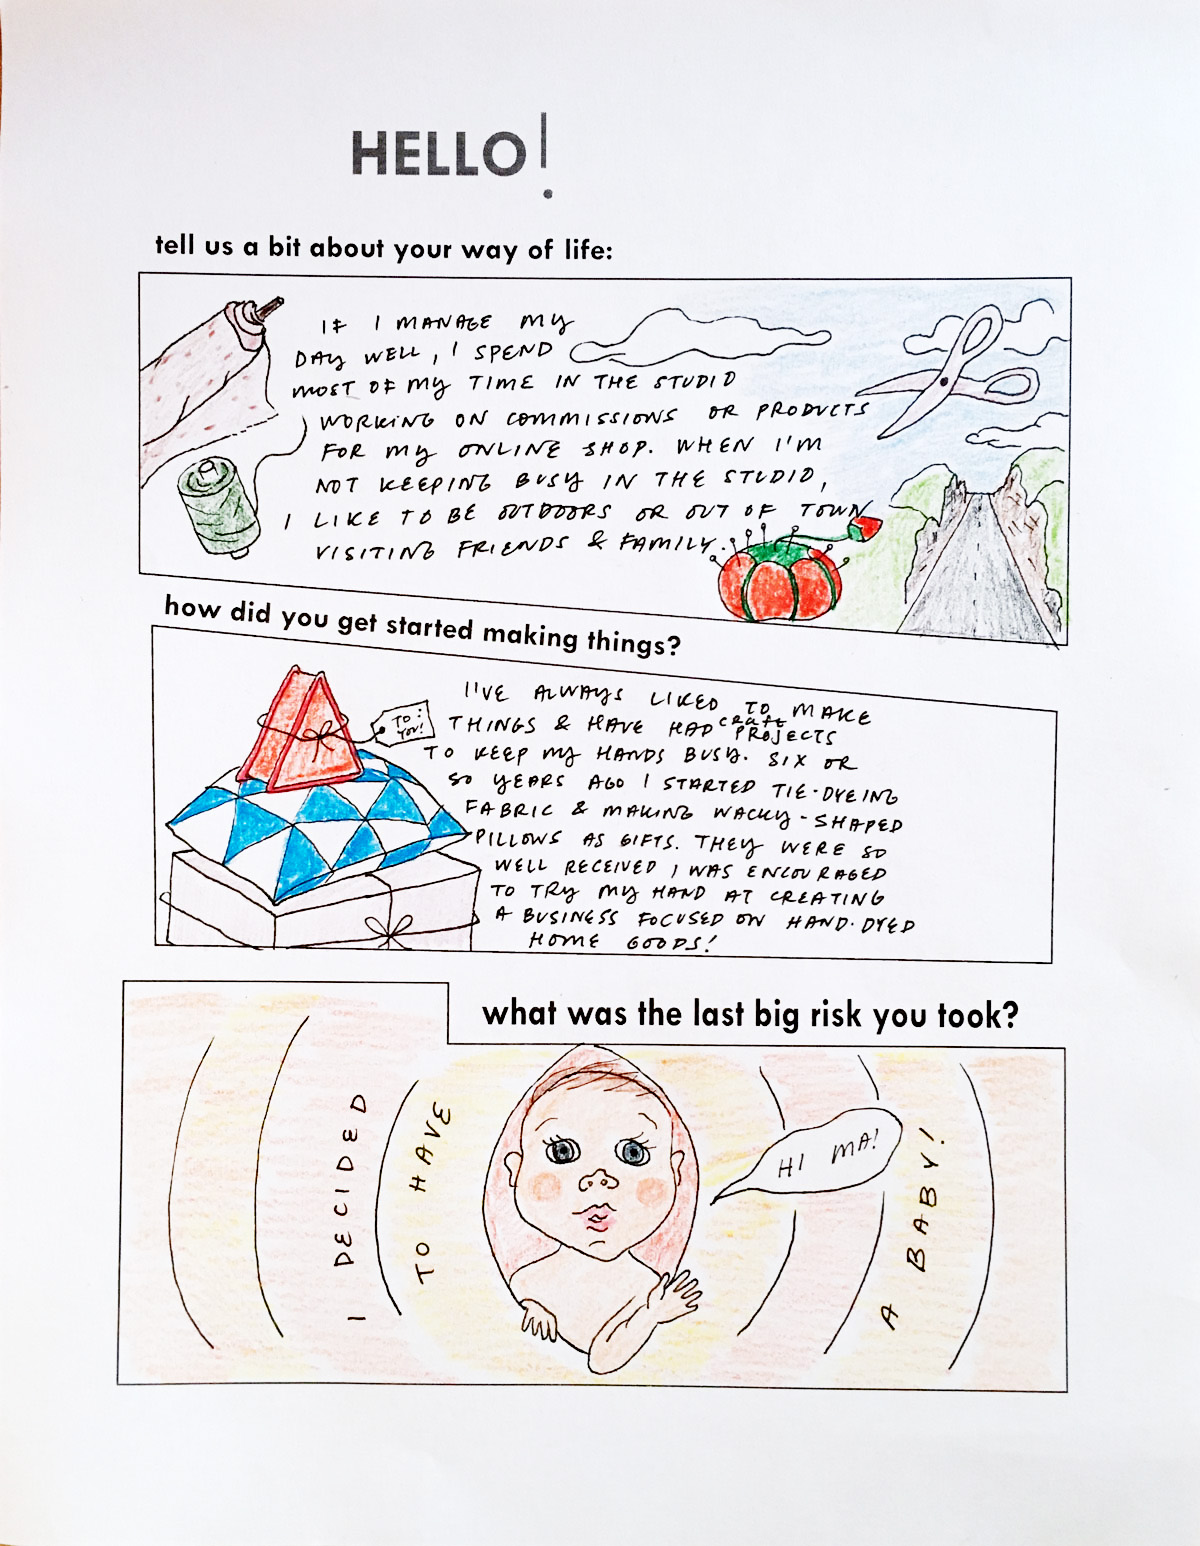 NIDO_Illustrated_Interview_1 copy.jpg